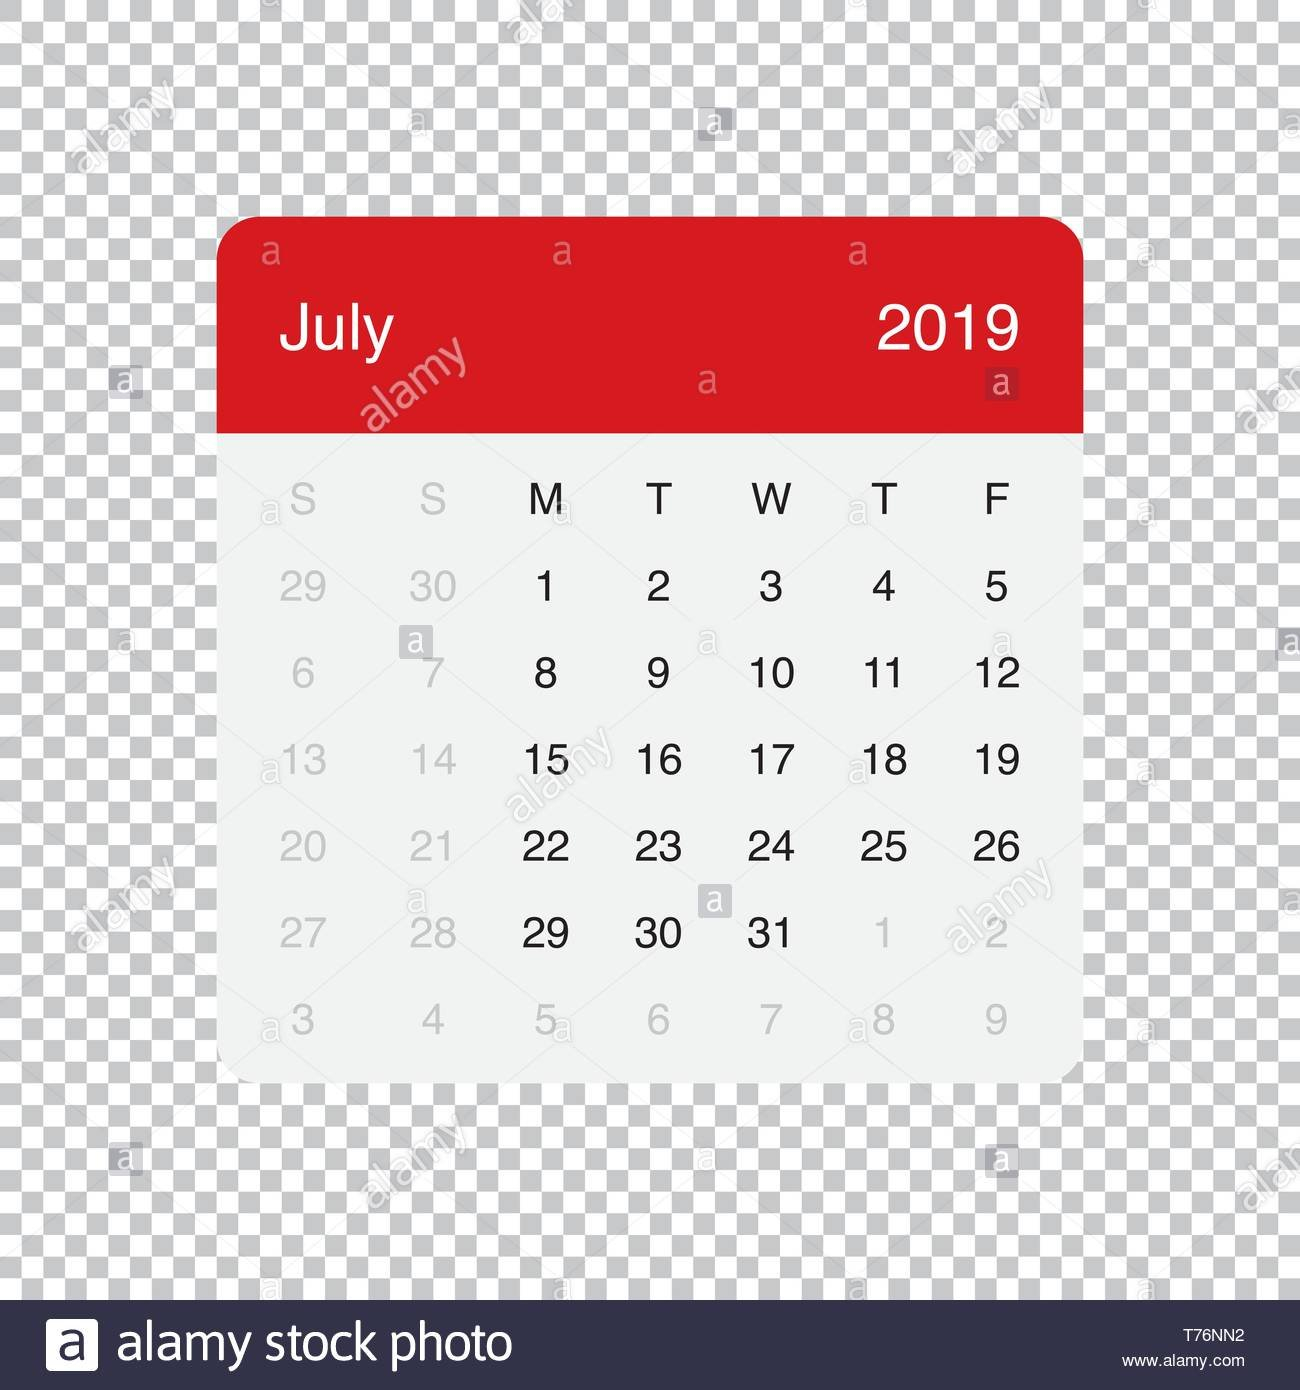 July 2019 Calendar Stock Photos & July 2019 Calendar Stock Images July 8 2019 Calendar